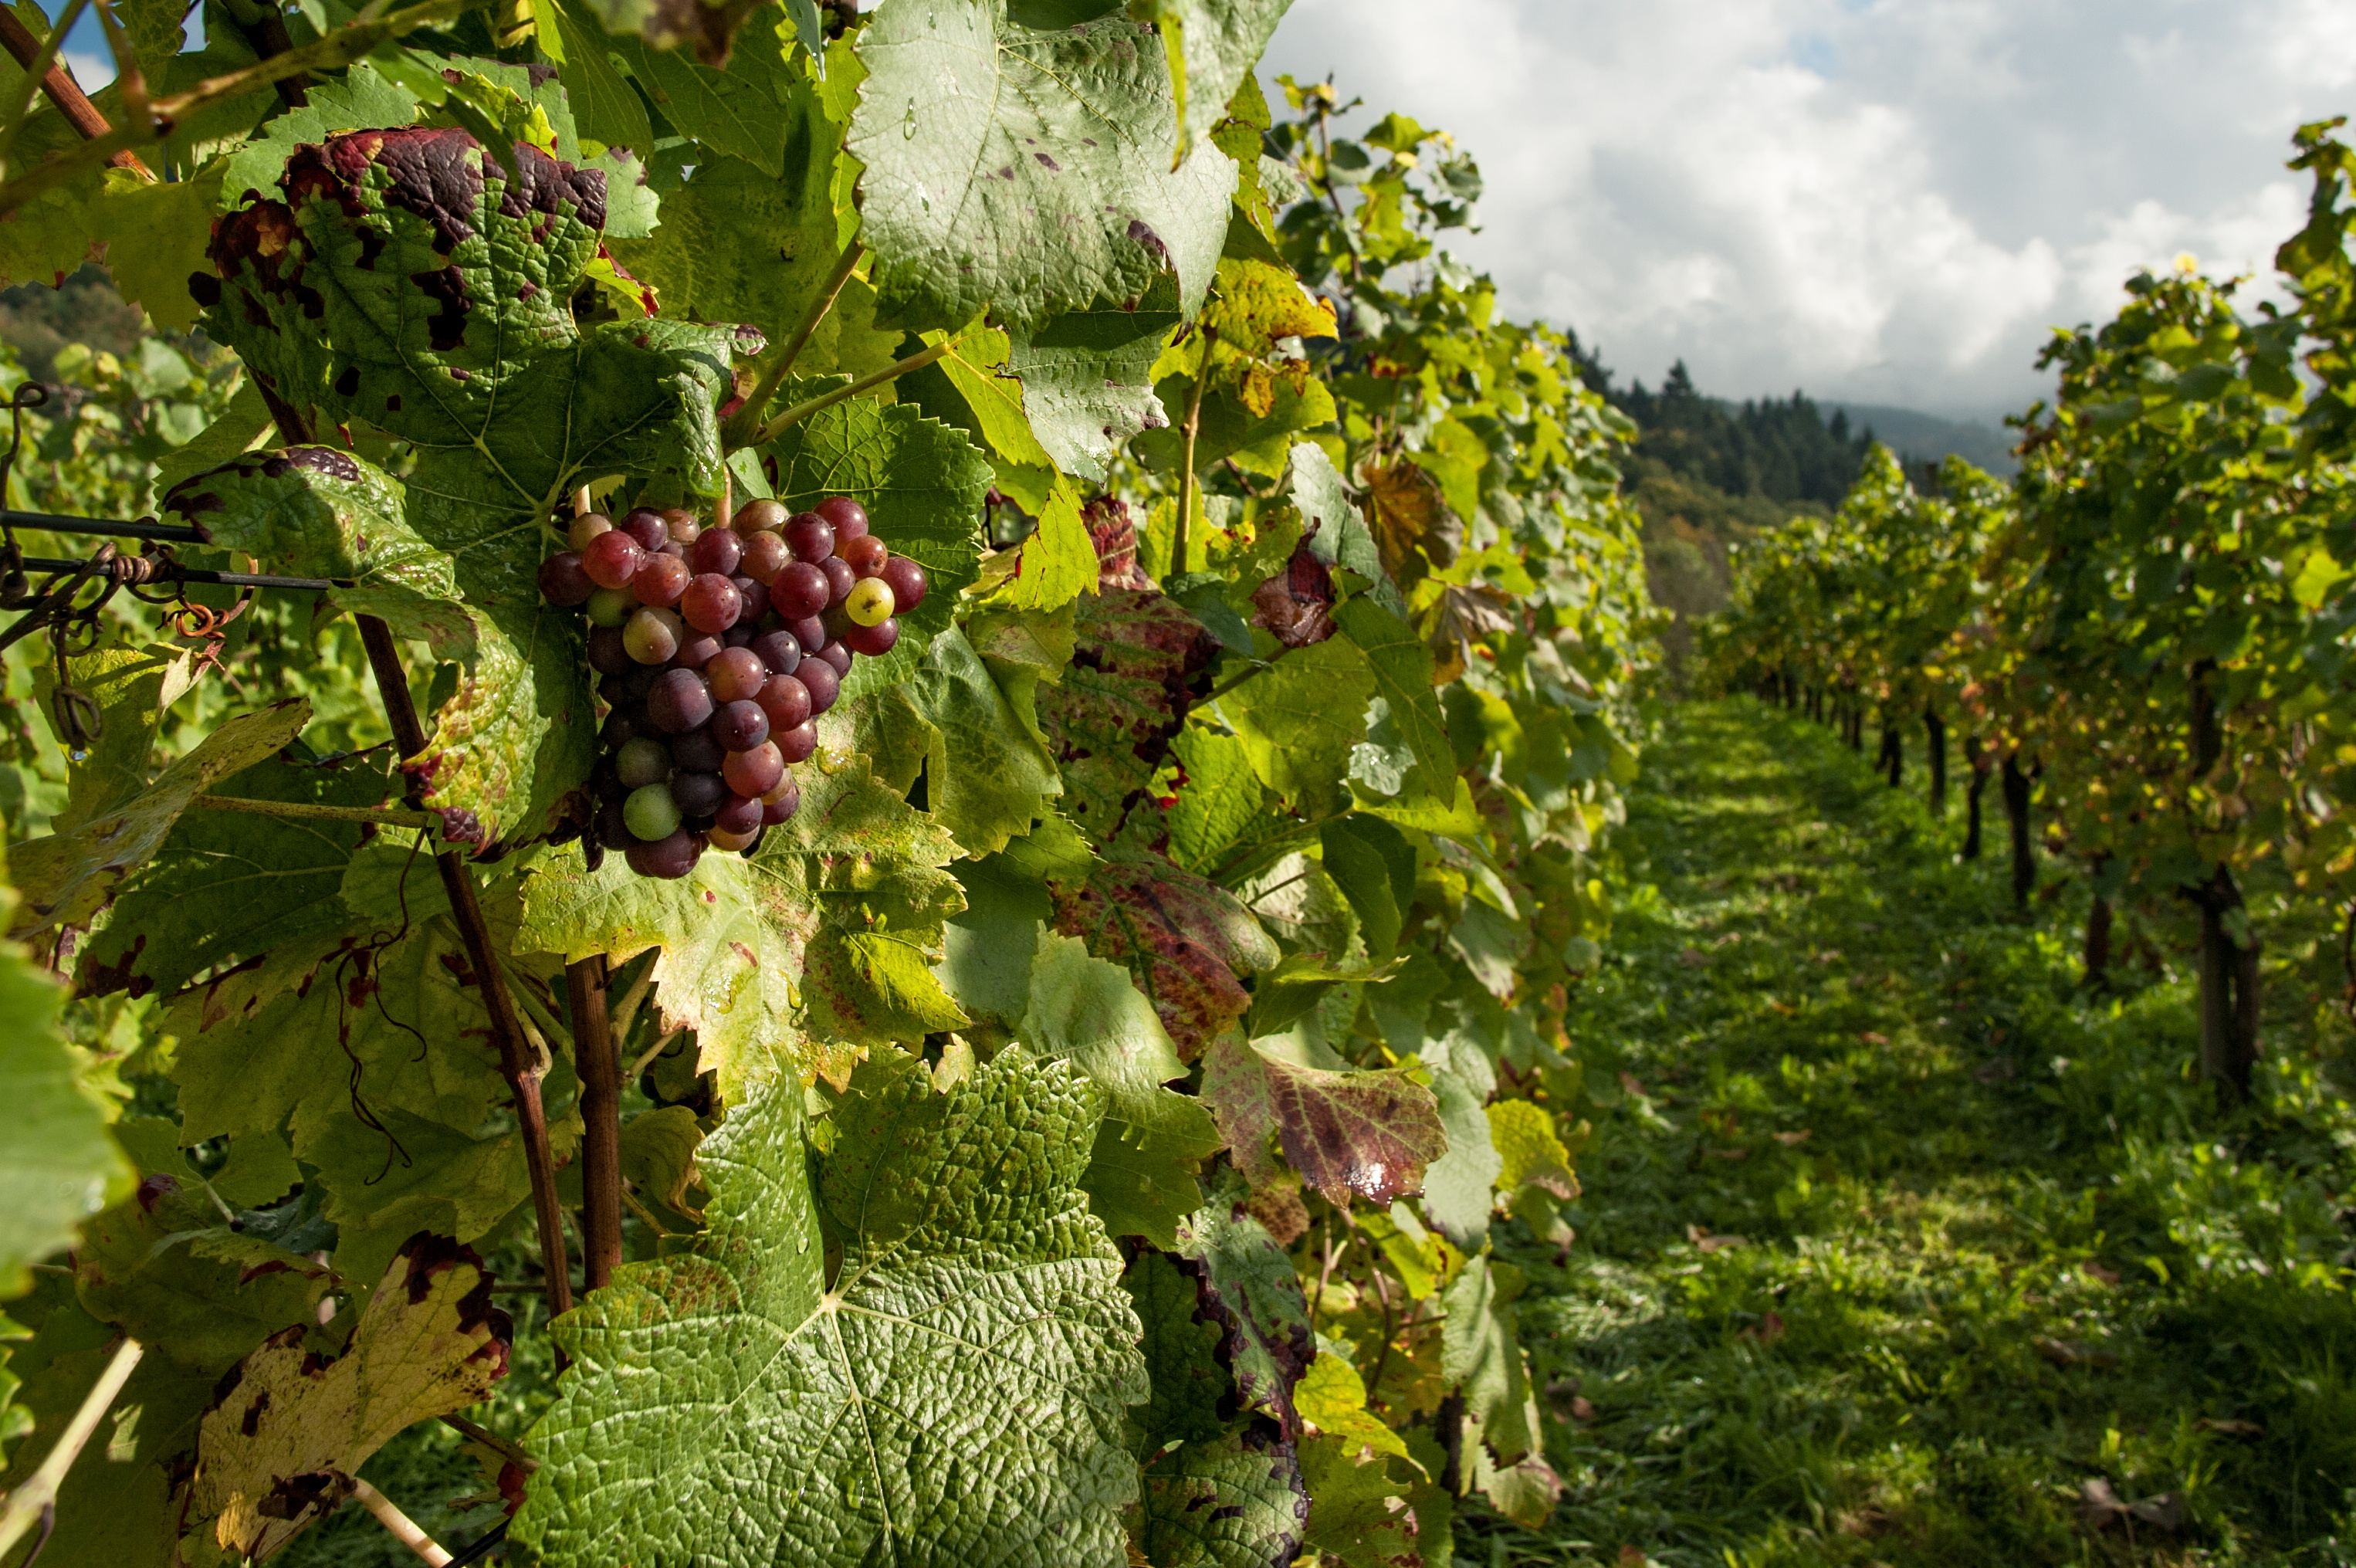 Organic wines are difficult to make because it takes a lot of work to follow all the regulations